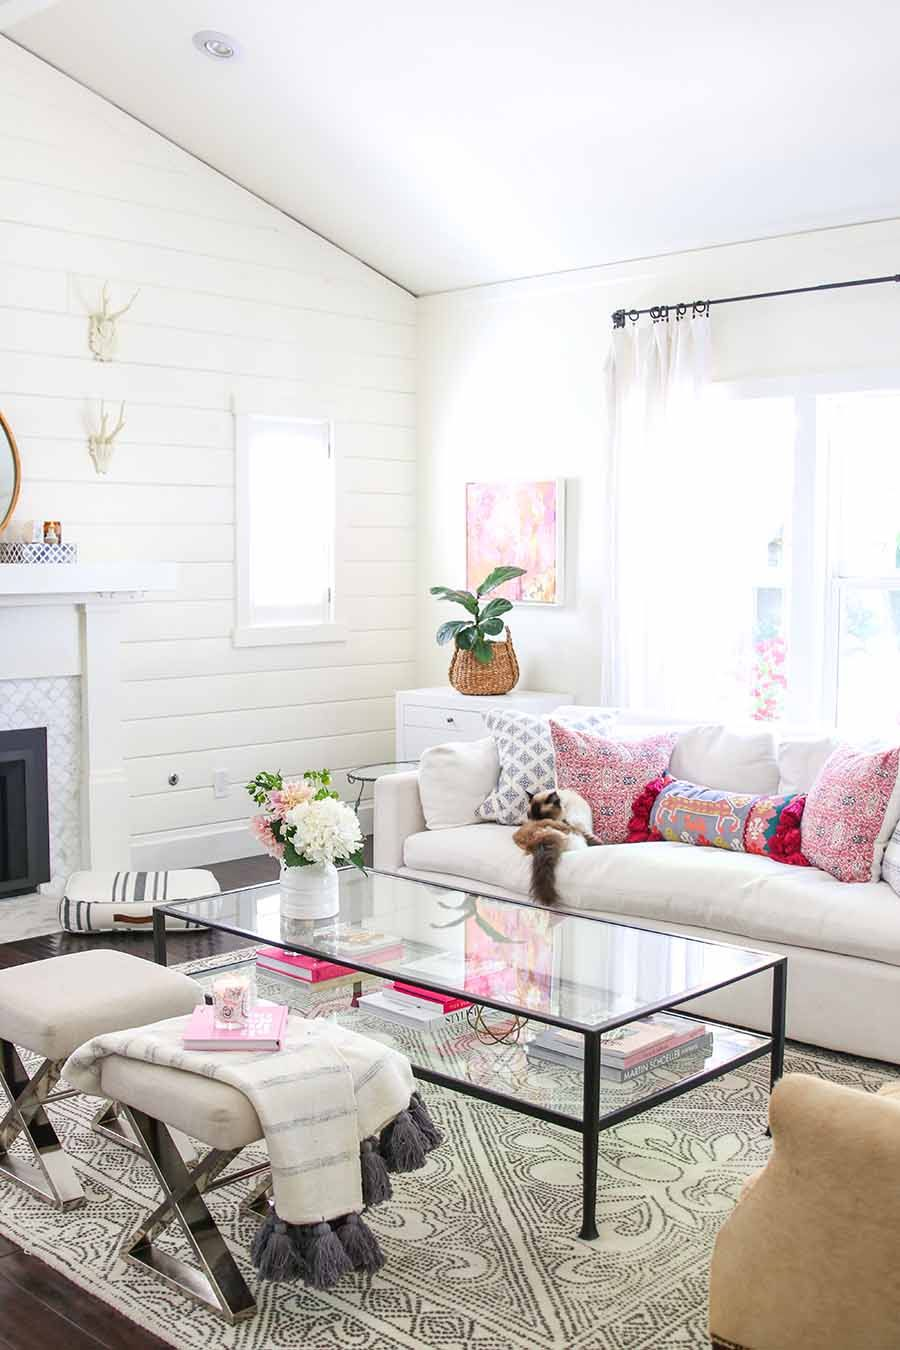 Simple Summer Decorating Updates To My Home Summer Living Room Glam Living Room Modern Glam Living Room Summer living room decor